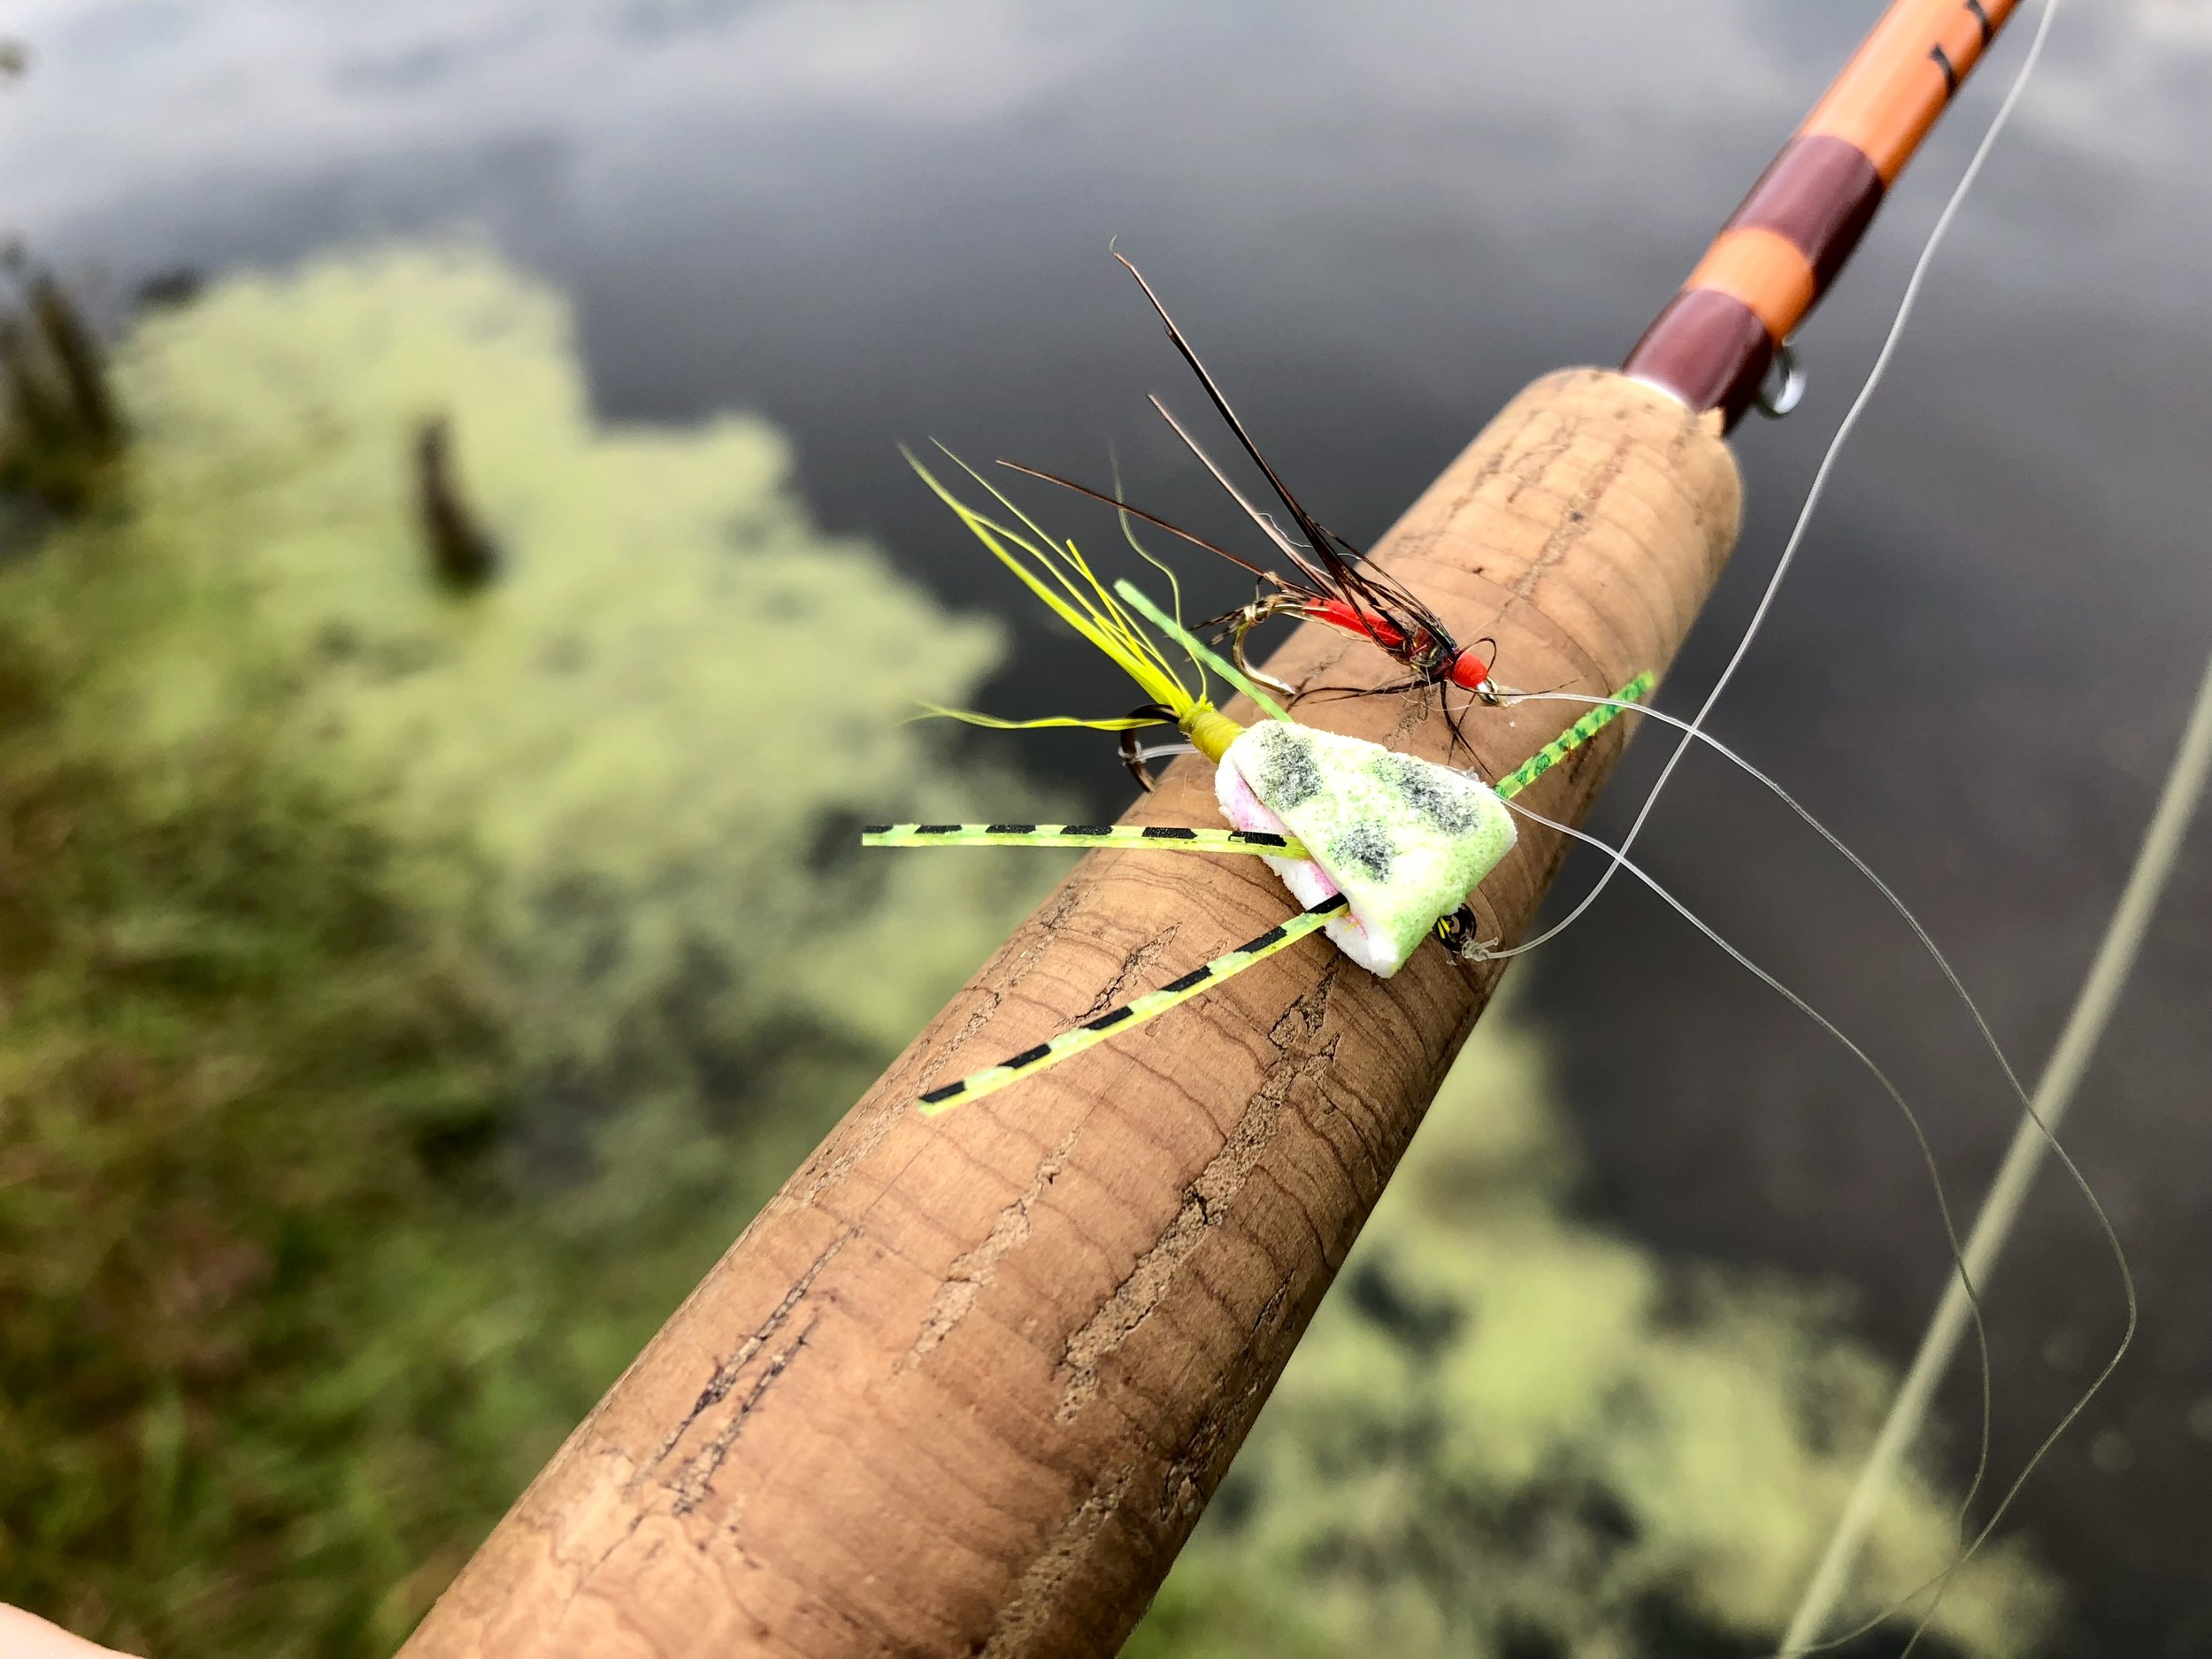 After a good number of fish the finish and tail is nearly worn off this triangle bug and the soft hackle dropper is missing its tail, body and most of its hackle but the duo was still going strong.